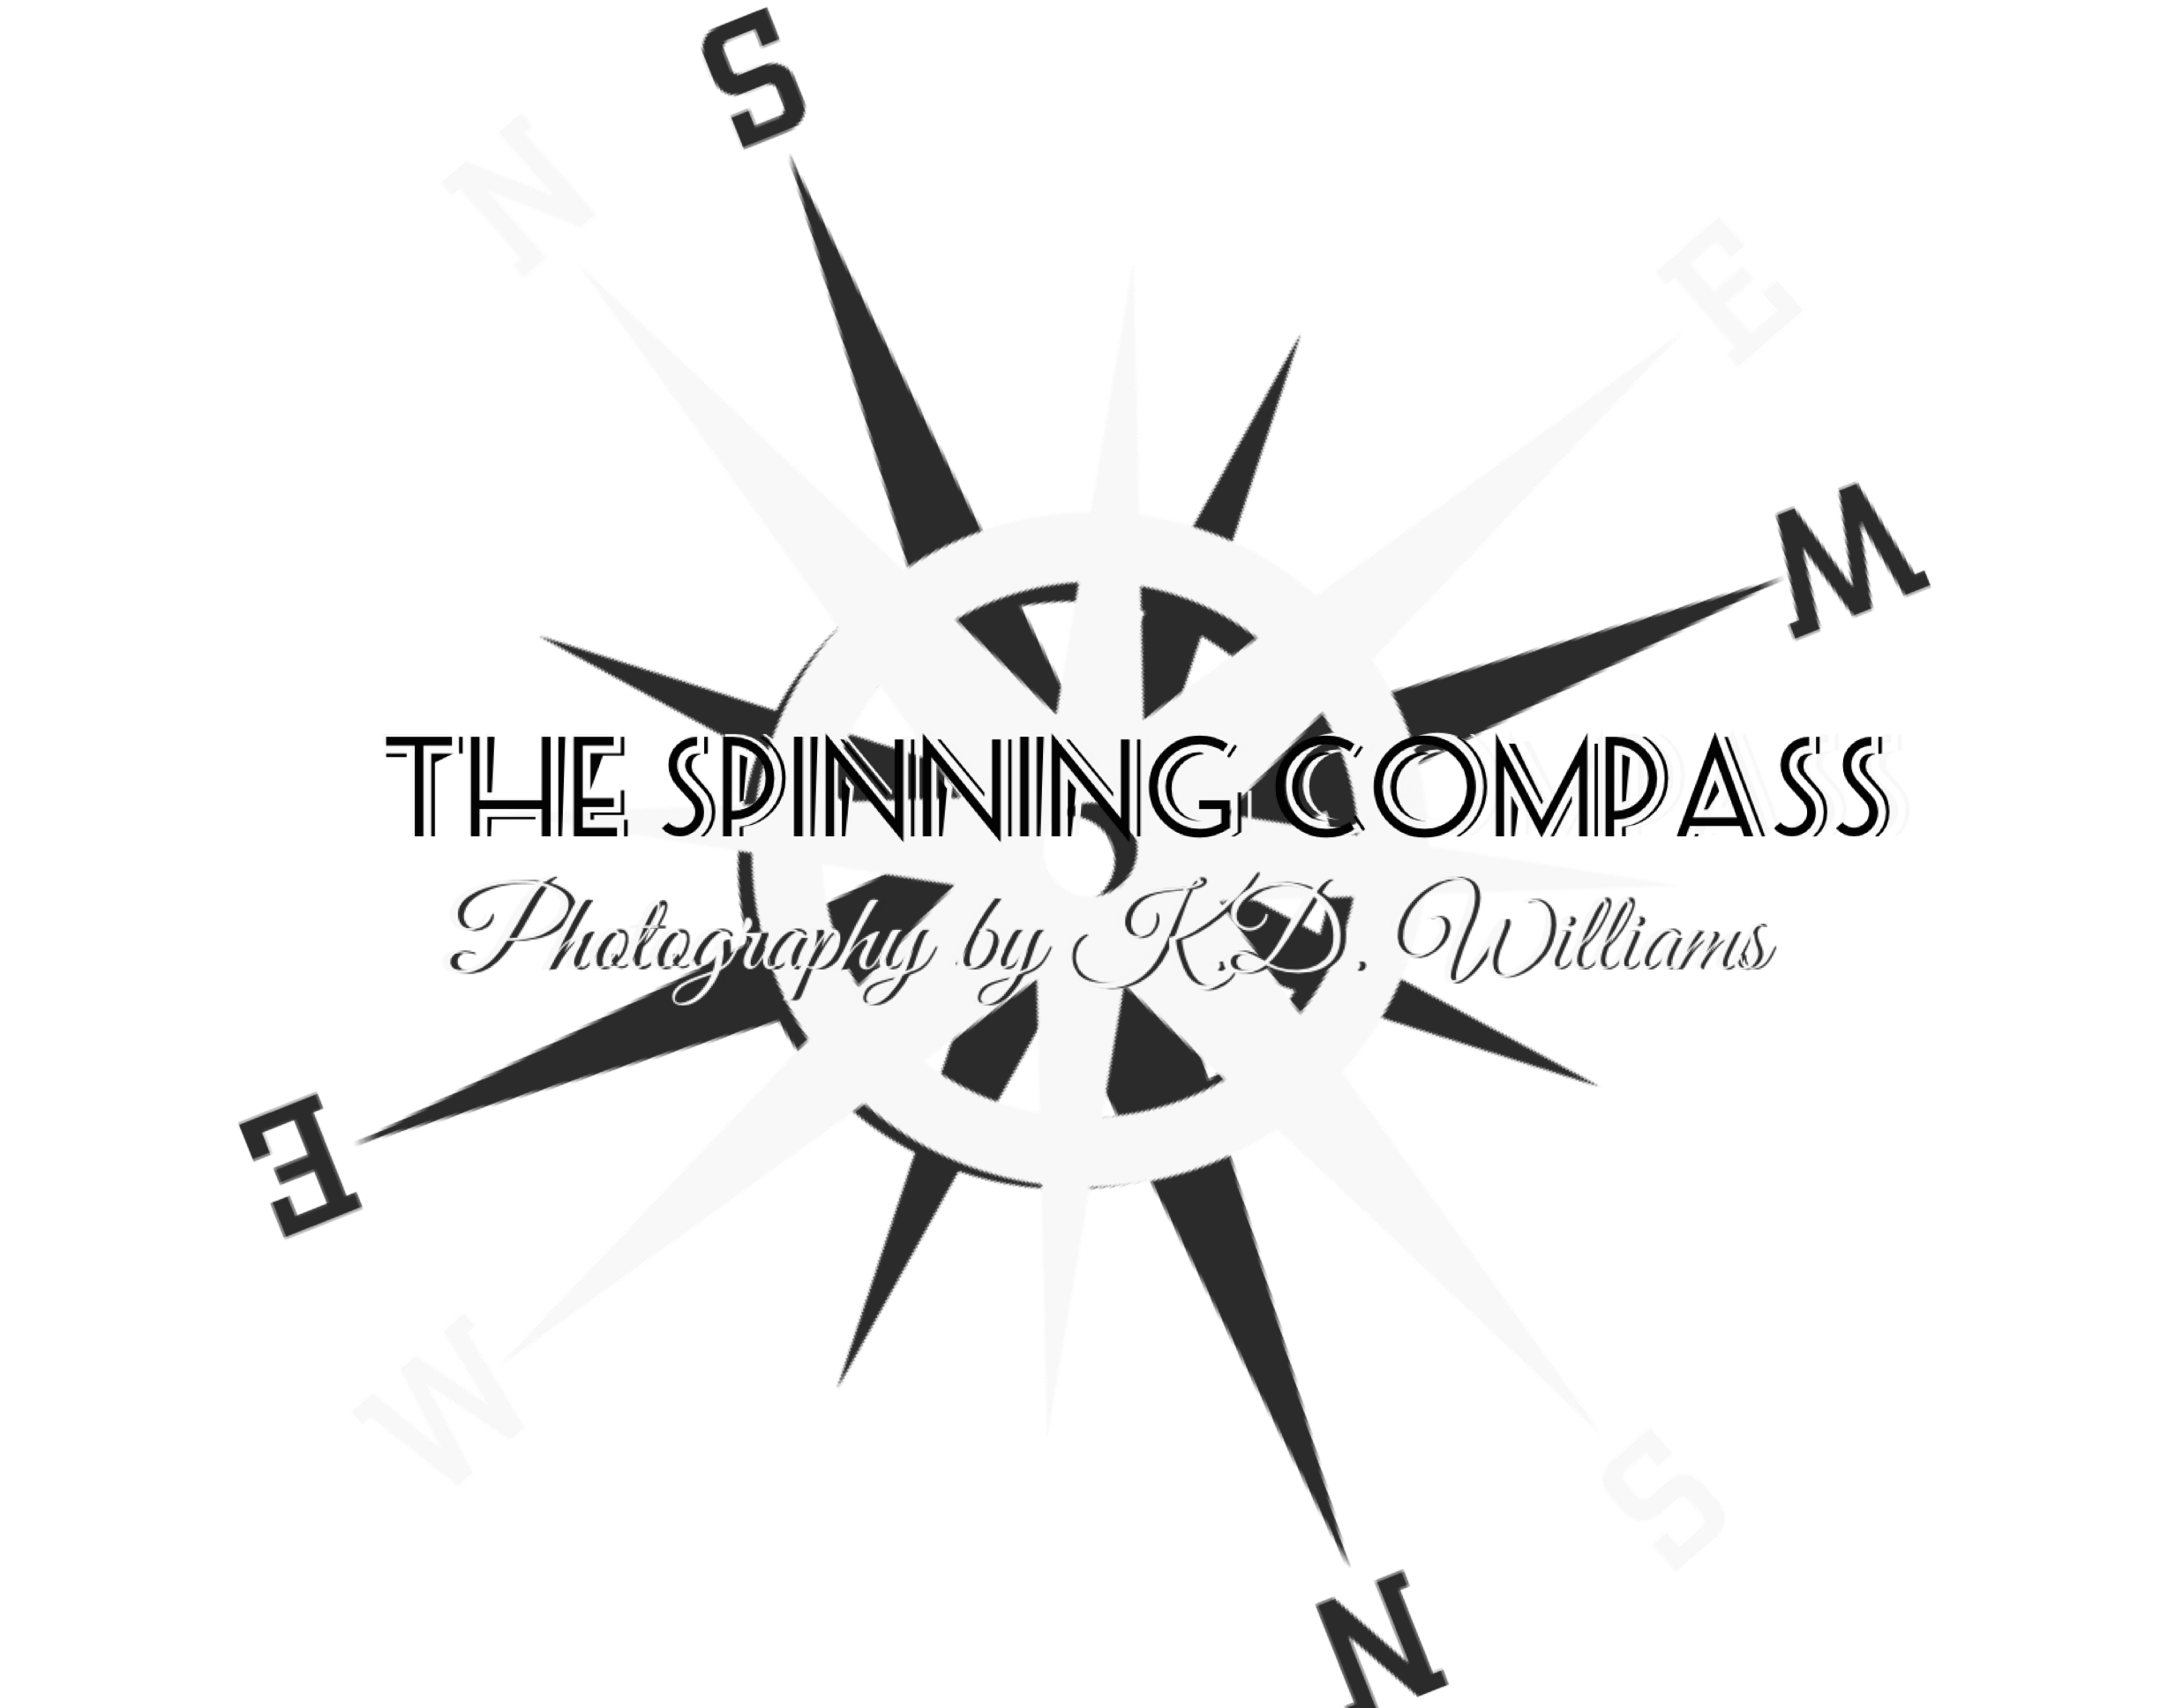 The Spinning Compass